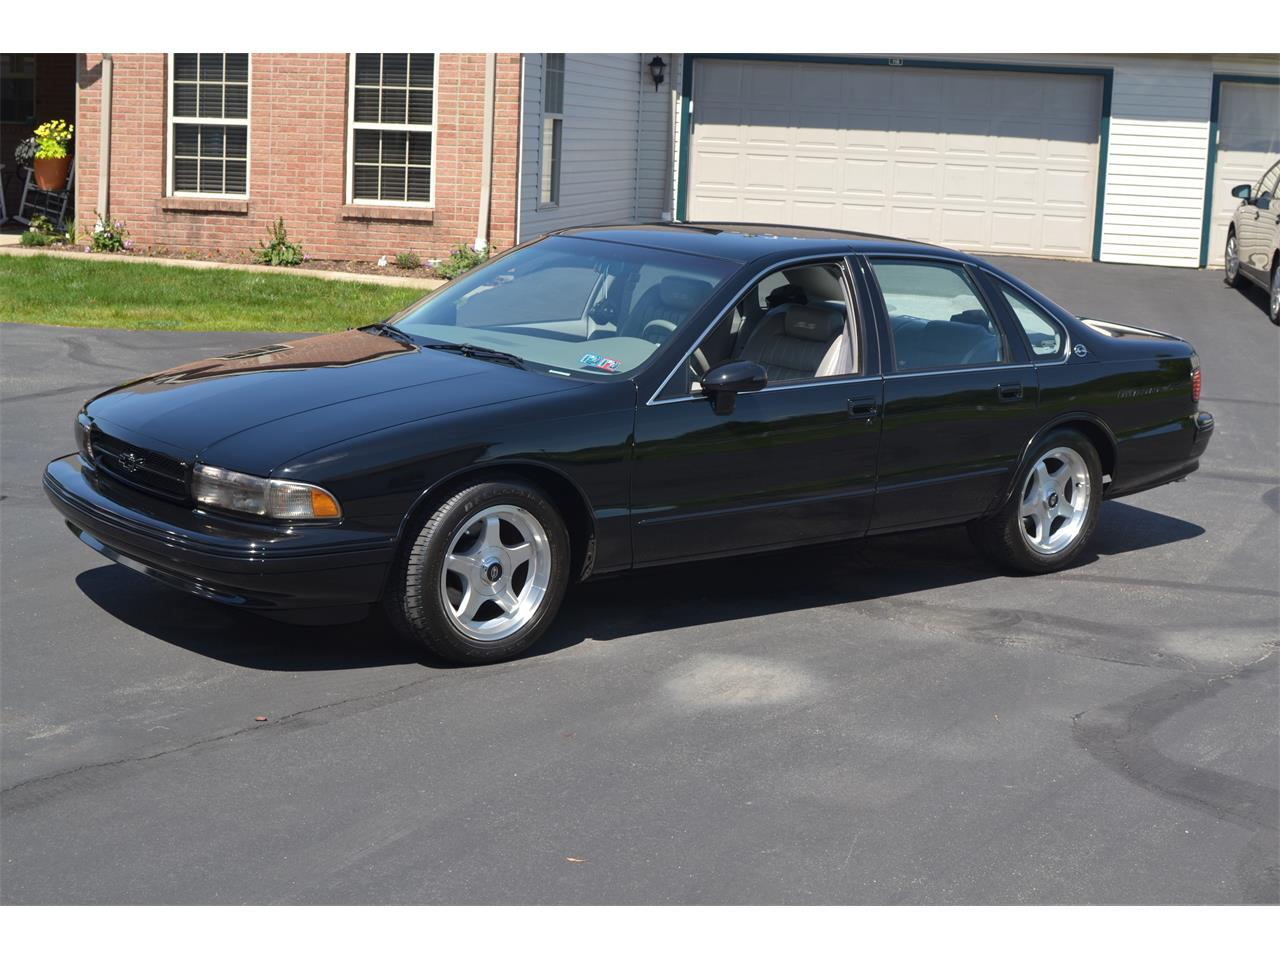 1994 Chevrolet Impala SS (CC-1235137) for sale in Freedom, Pennsylvania